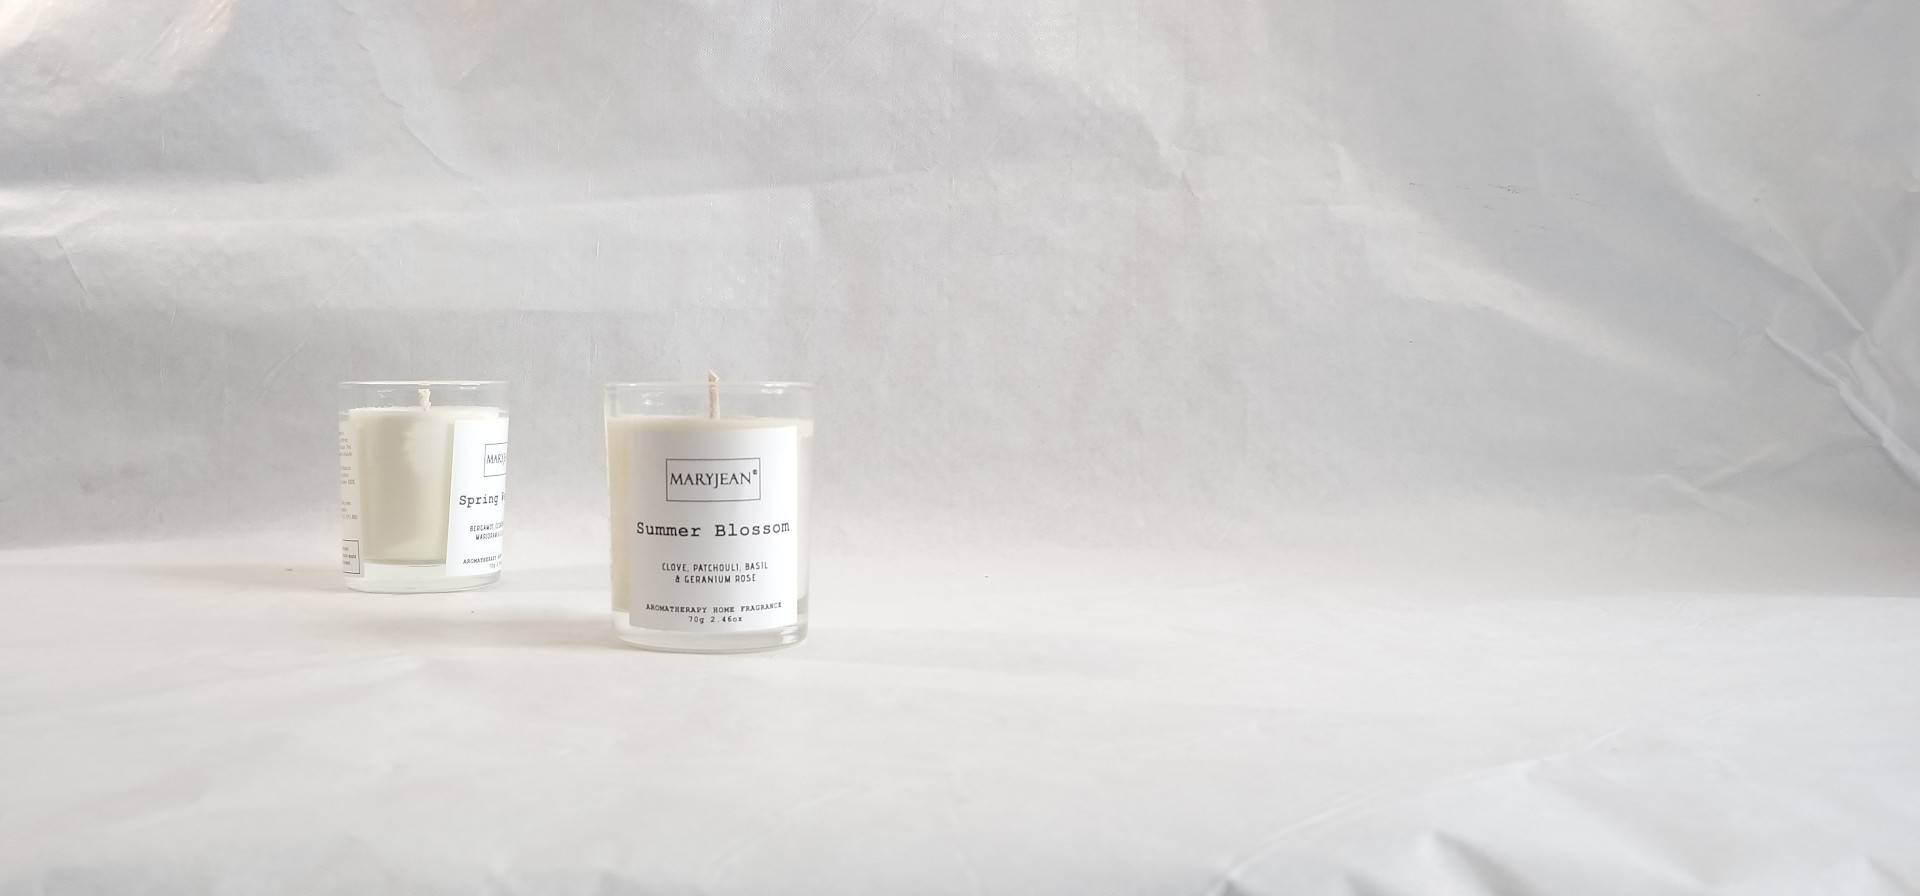 Natural Home Season's Spring And Summer Fragrance Hand Poured Luxury Candle Gift Set en_GB